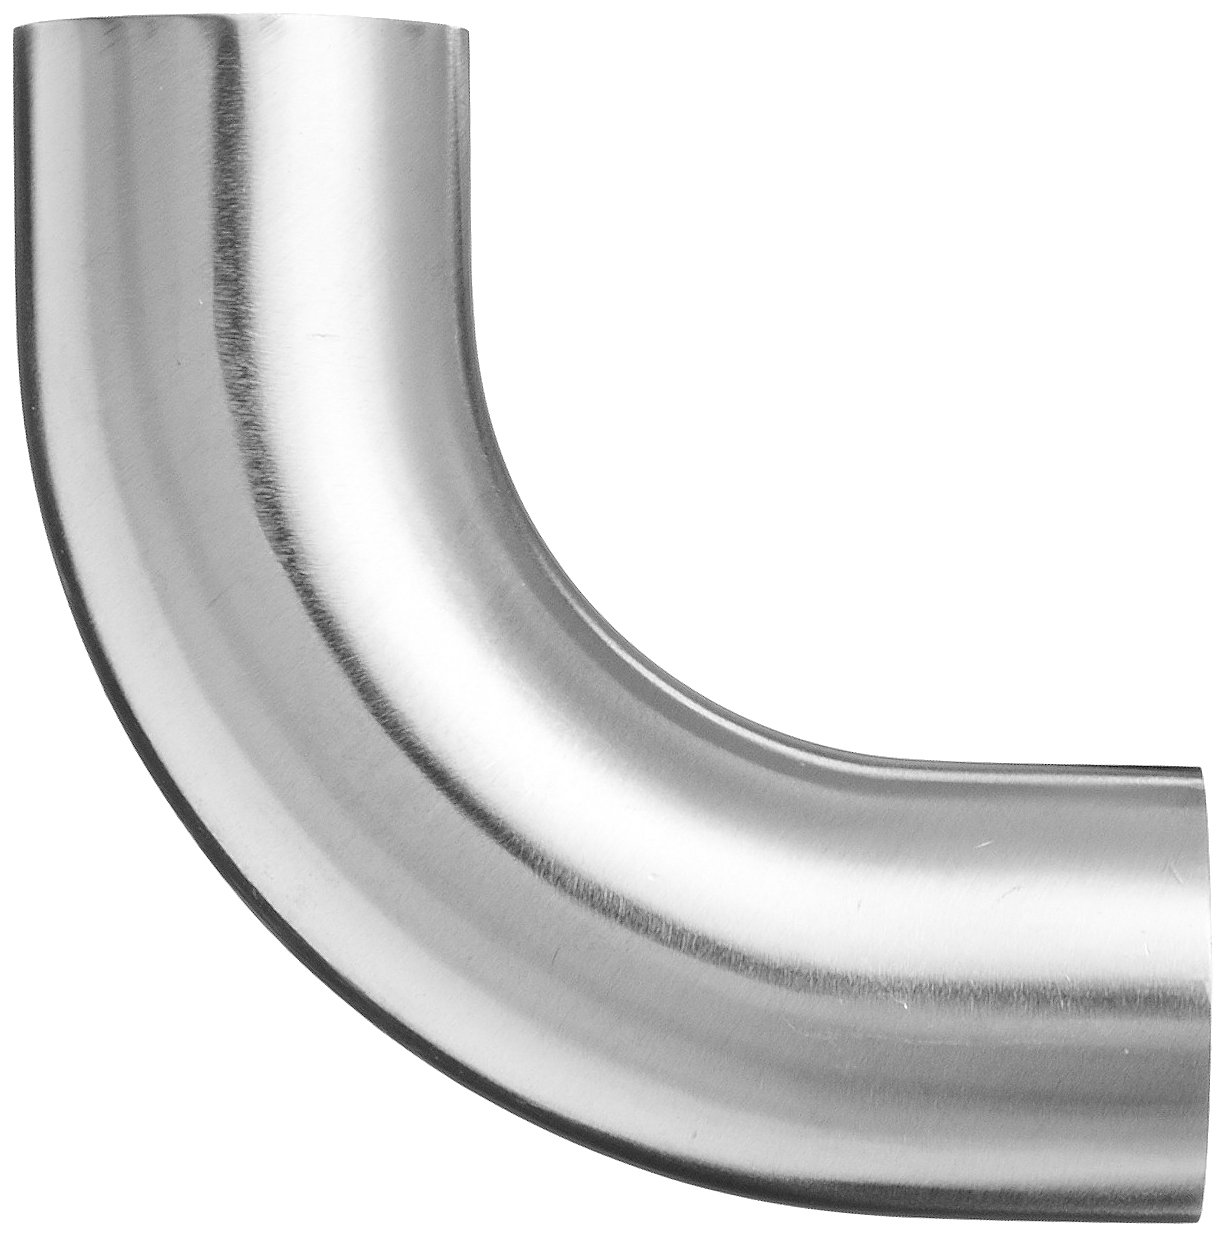 Dixon B2S-G100P Stainless Steel 304 Sanitary Fitting 90 Degree Polished Weld Long Elbow with Tangent 1 Tube OD